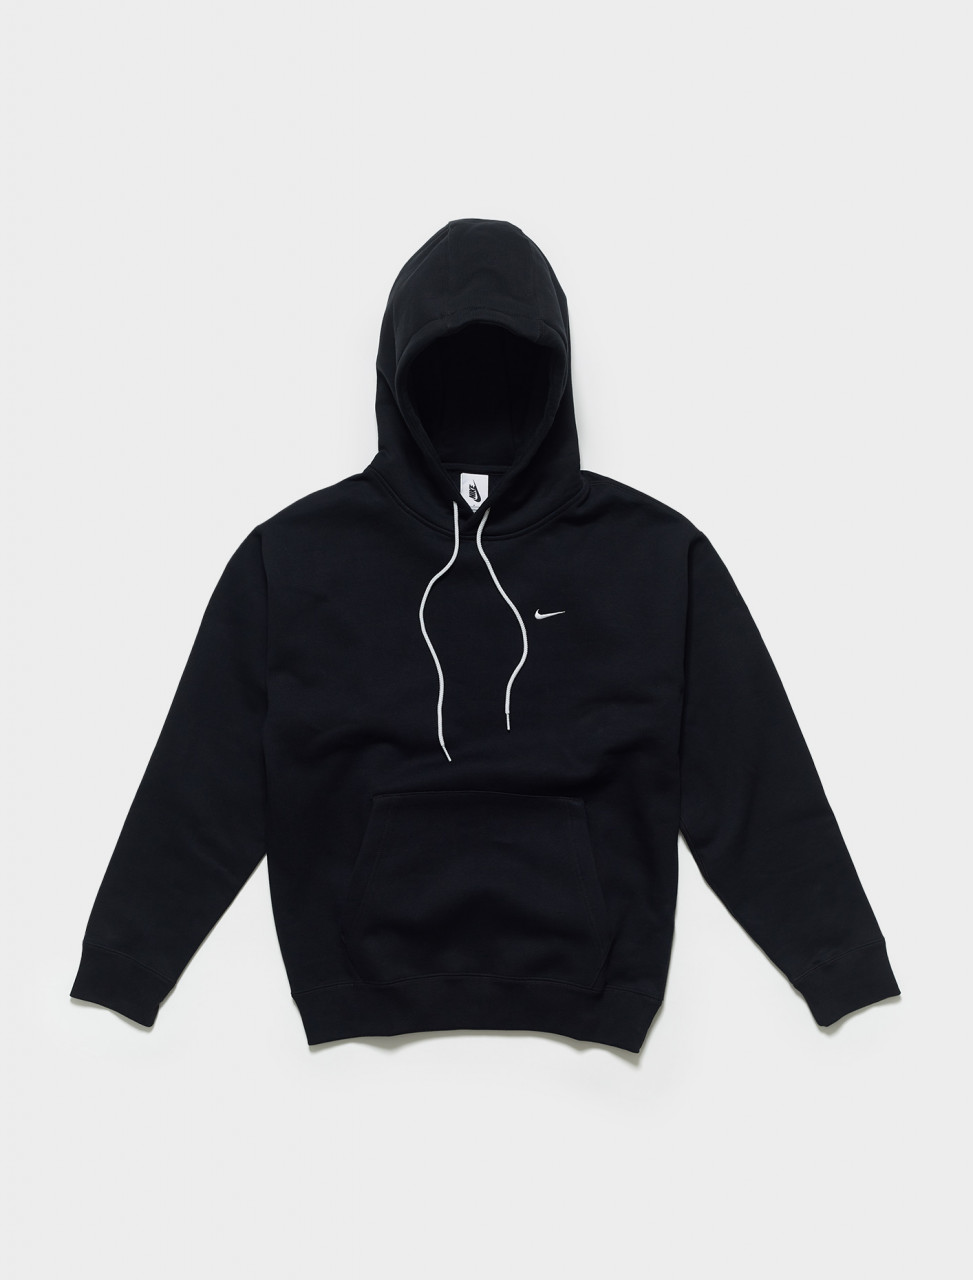 CV0552-010 NIKE NRG FLEECE HOODIE IN BLACK